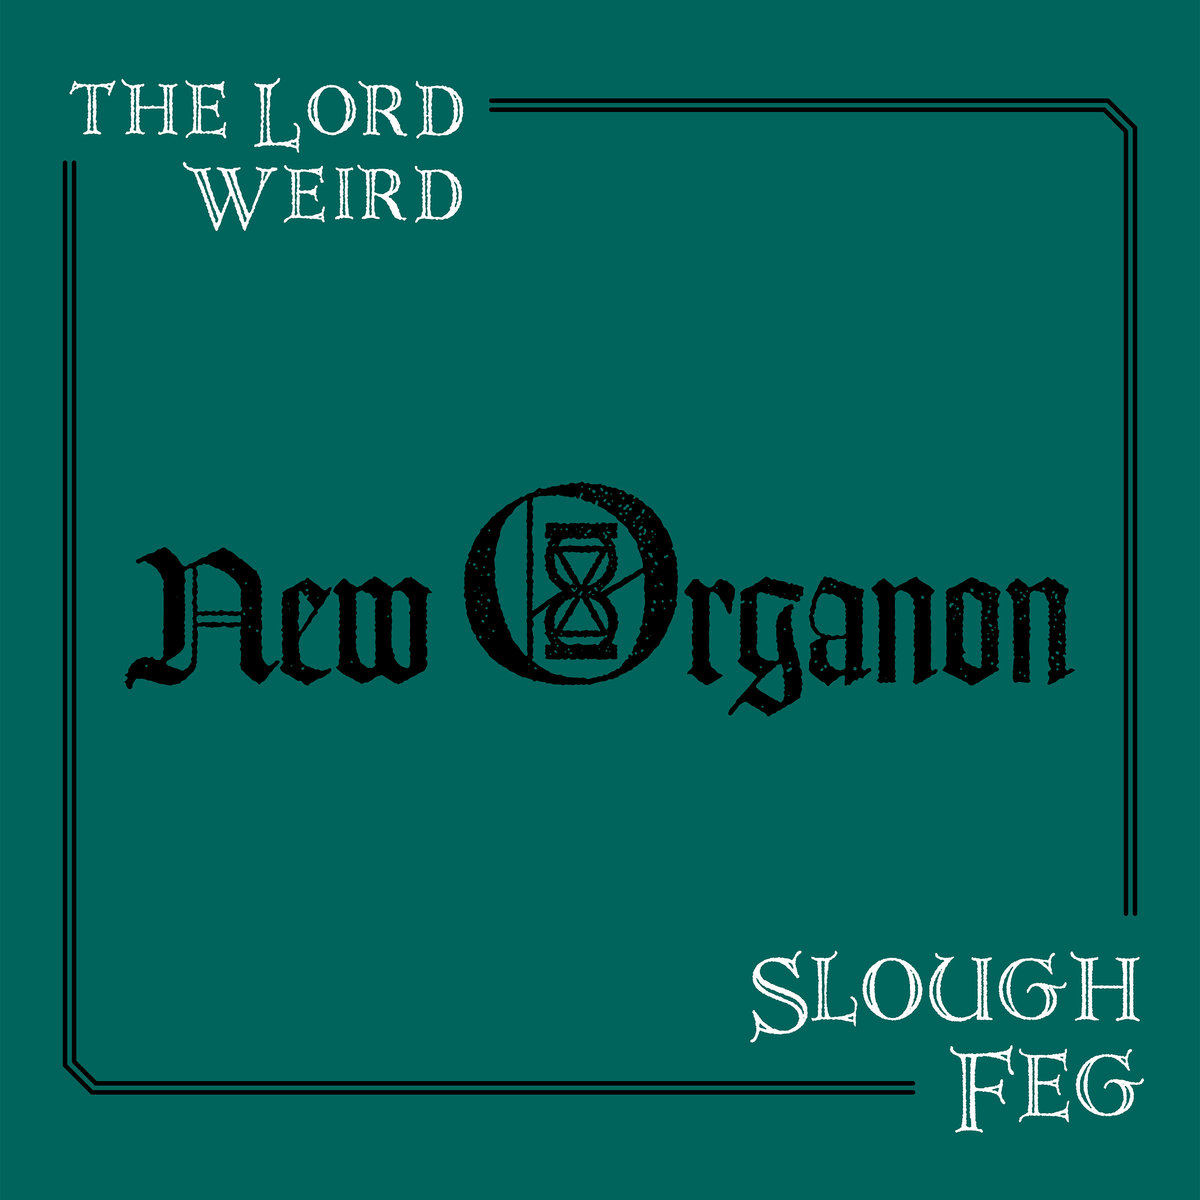 SLOUGH FEG - New Organon cover